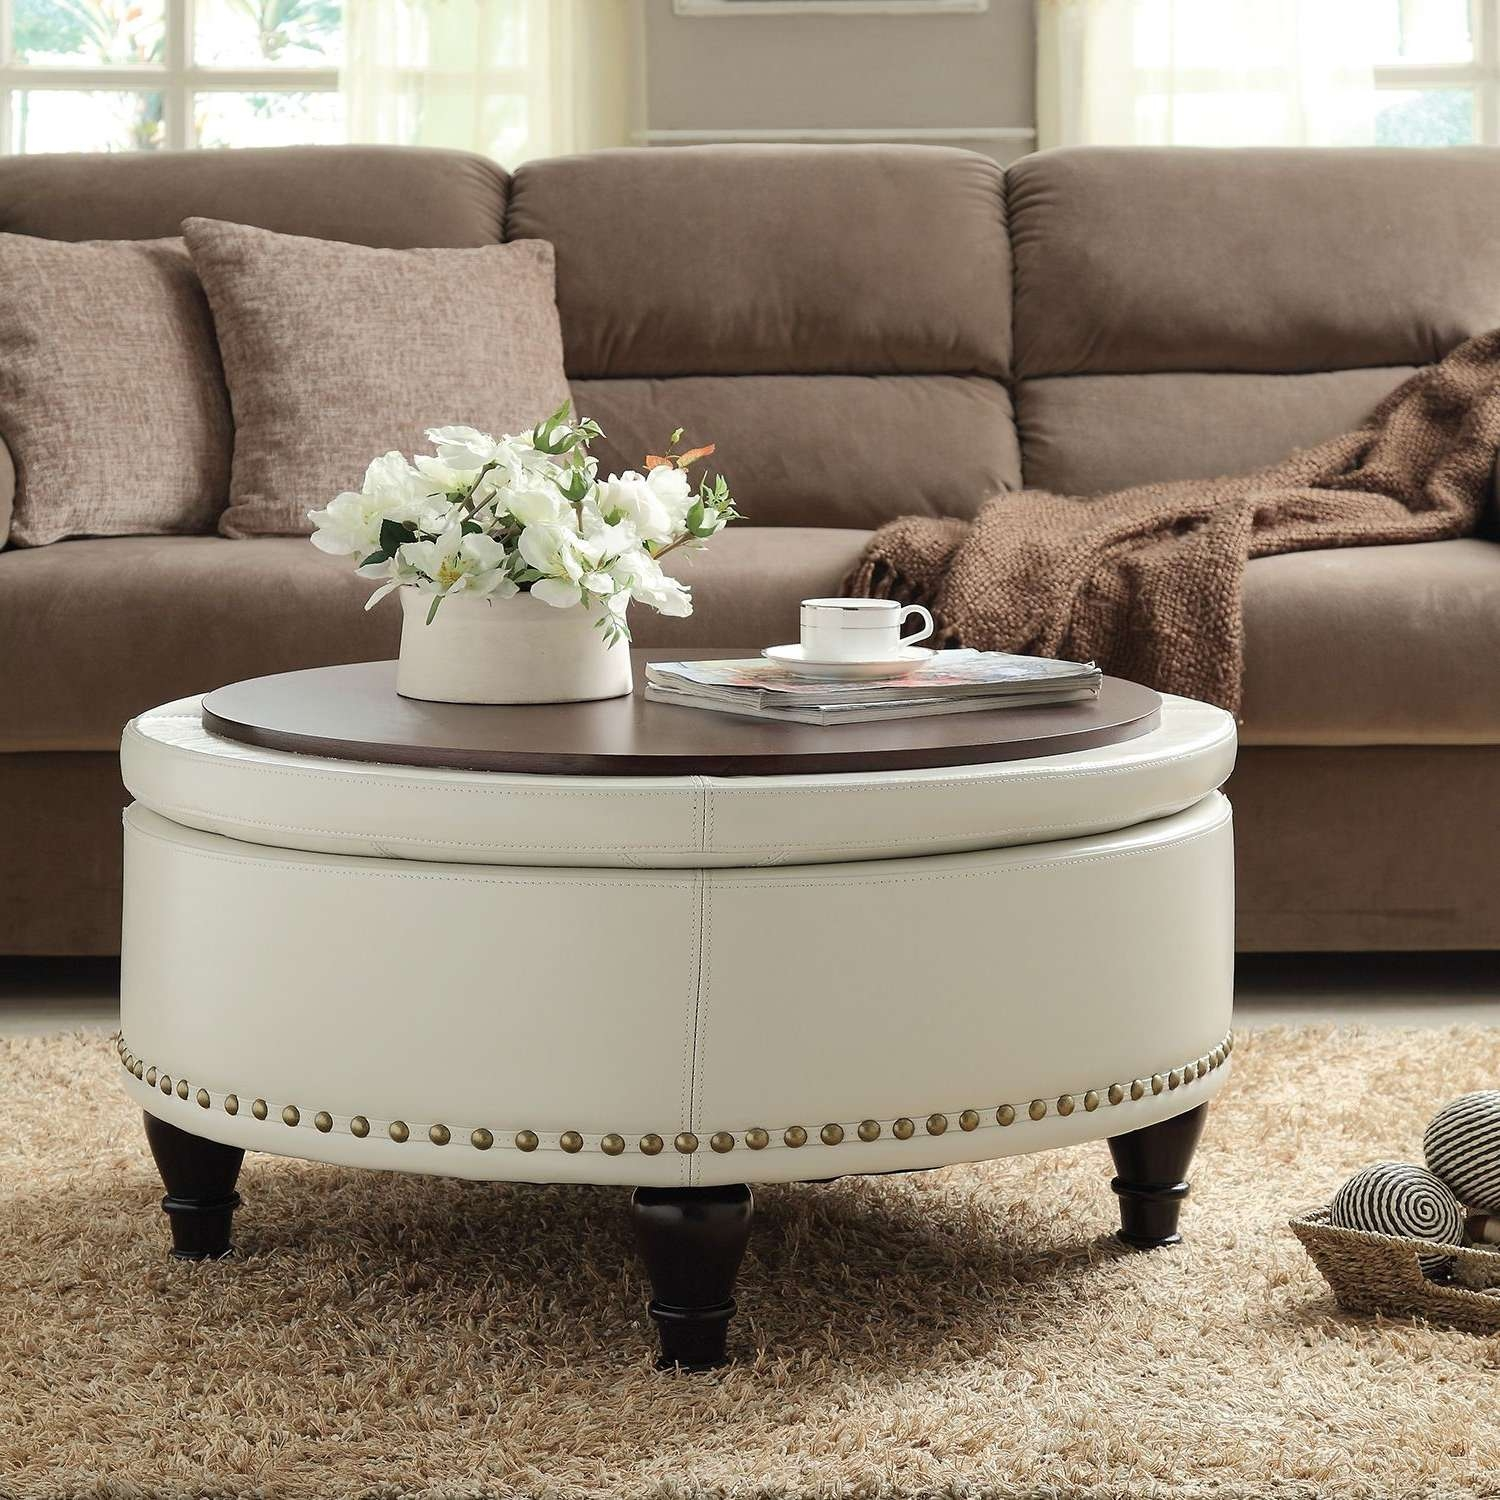 Furniture Ottoman Coffee Table Tray Ideas Hi Res Wallpaper Pertaining To Current Round Coffee Table Trays (View 12 of 20)